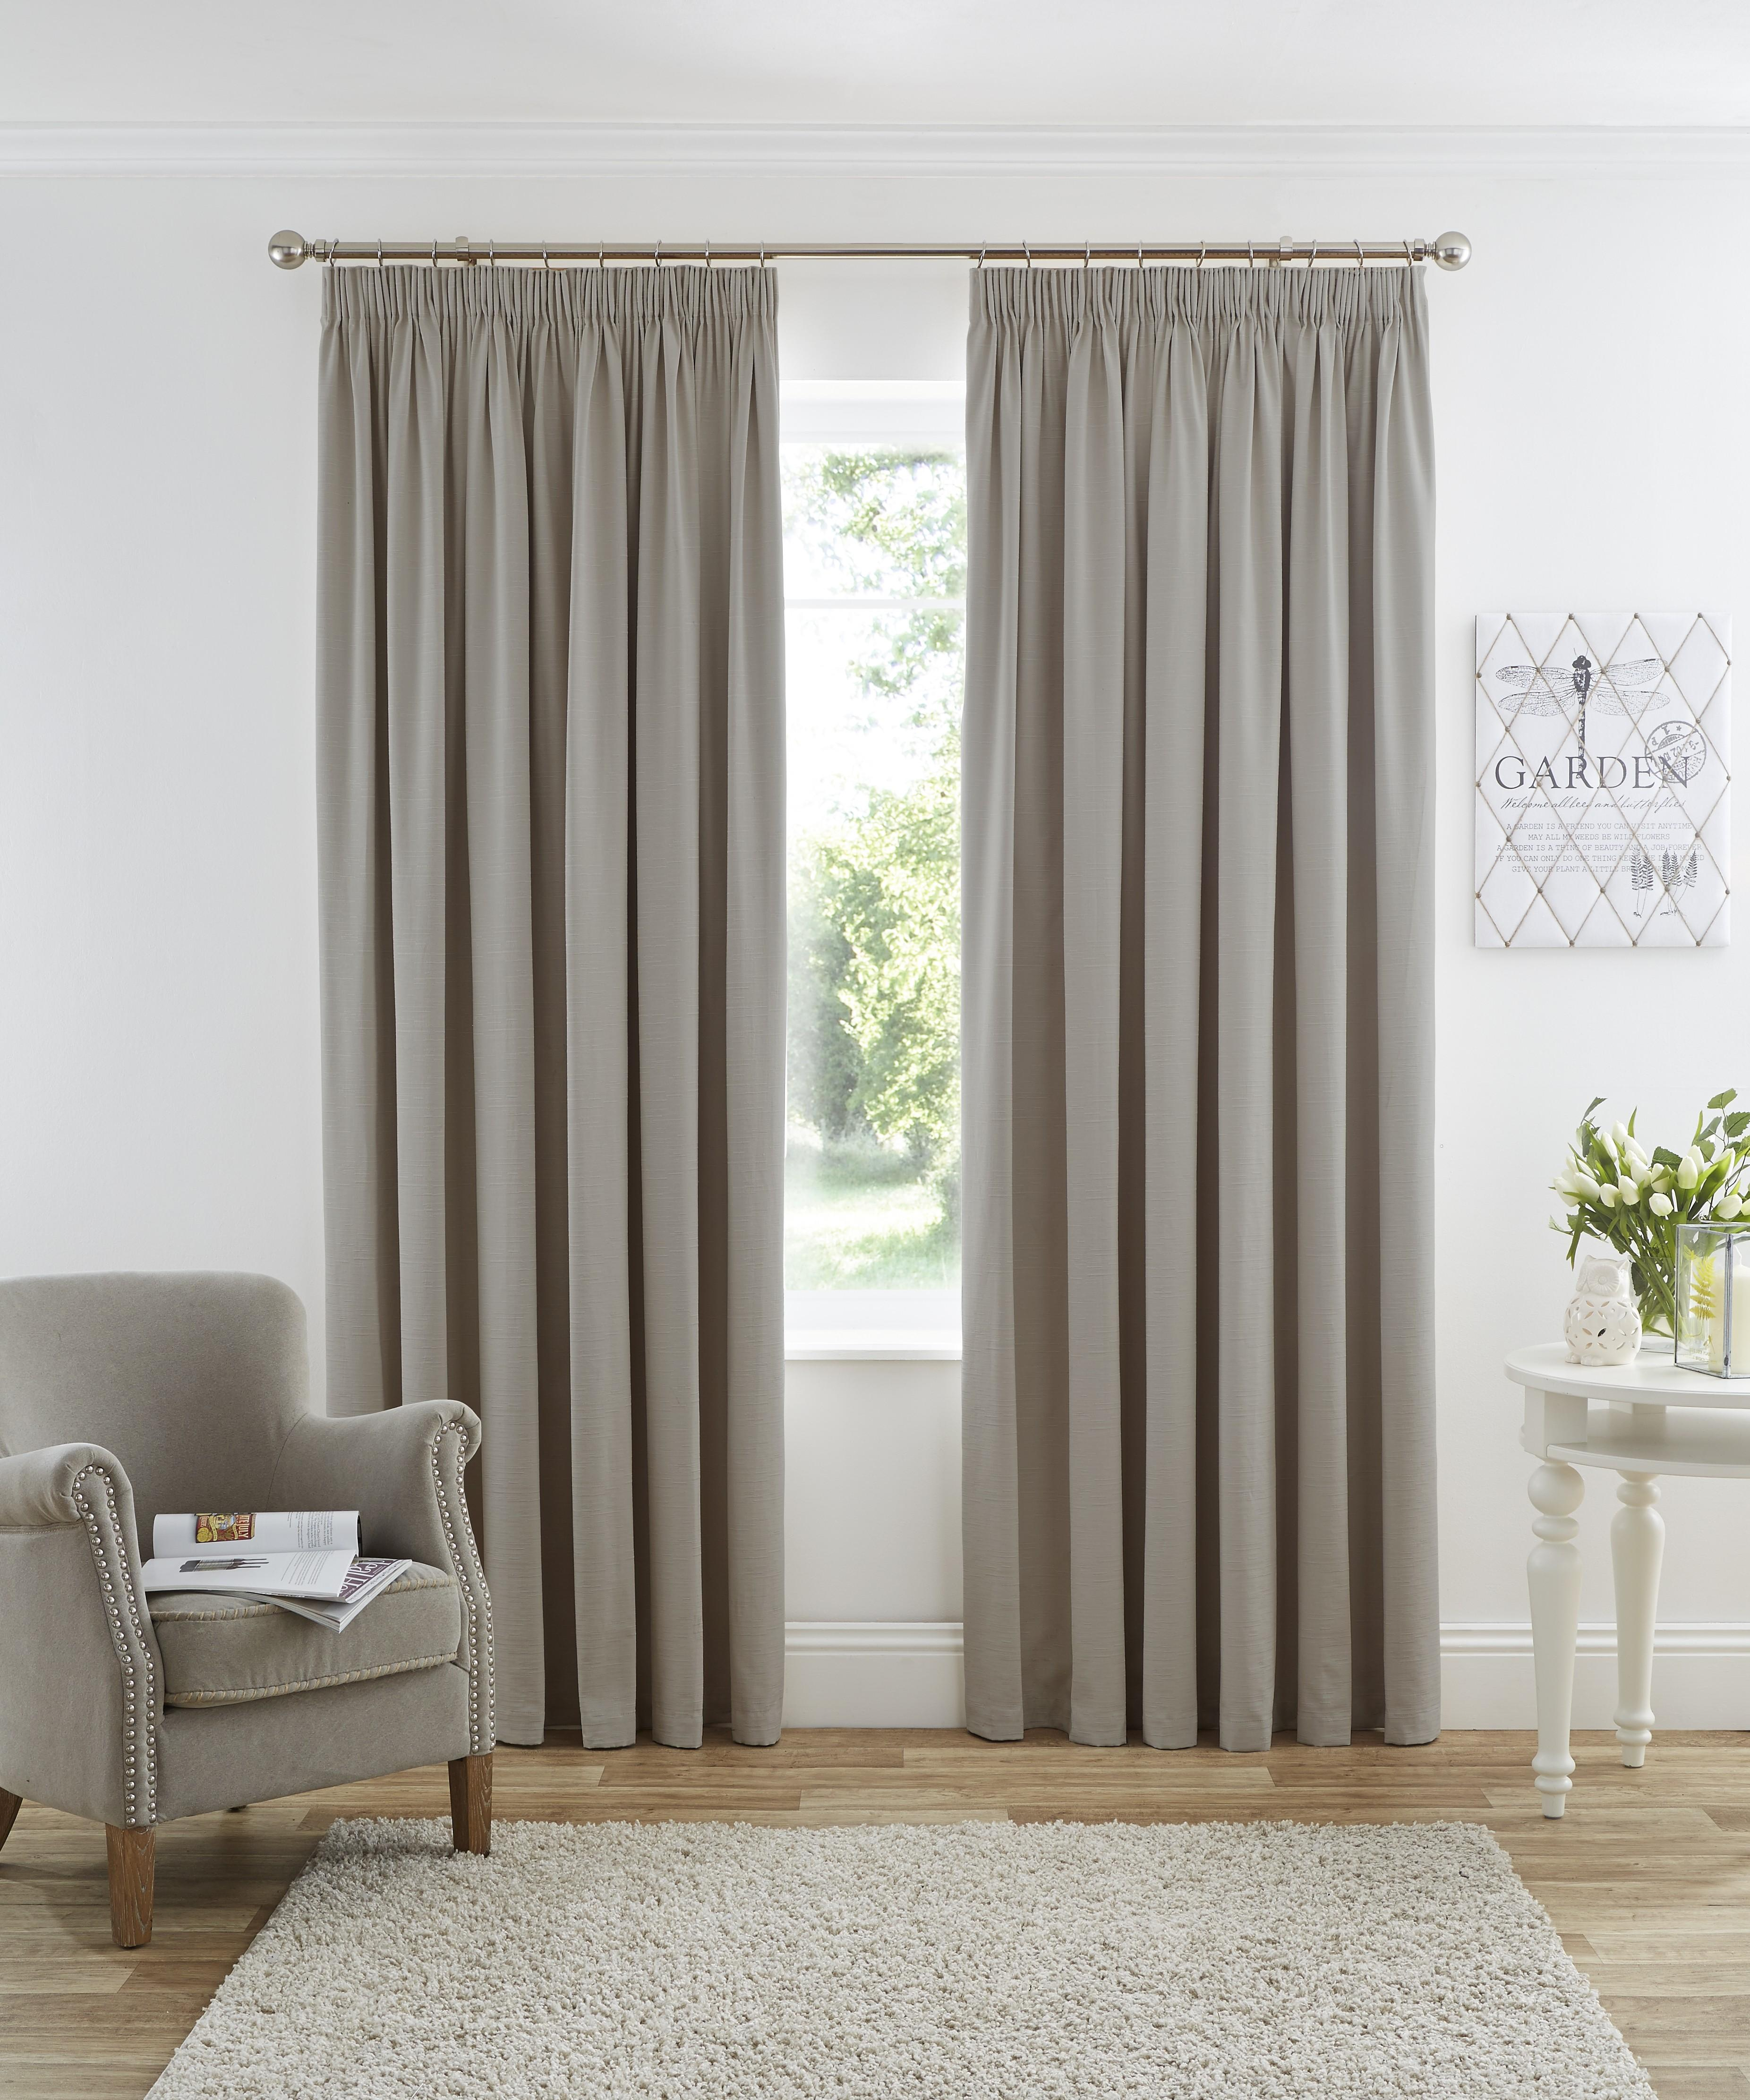 Media Room Blackout Curtains Harmony Blackout Pencil Pleat Curtains Taupe Ponden Home